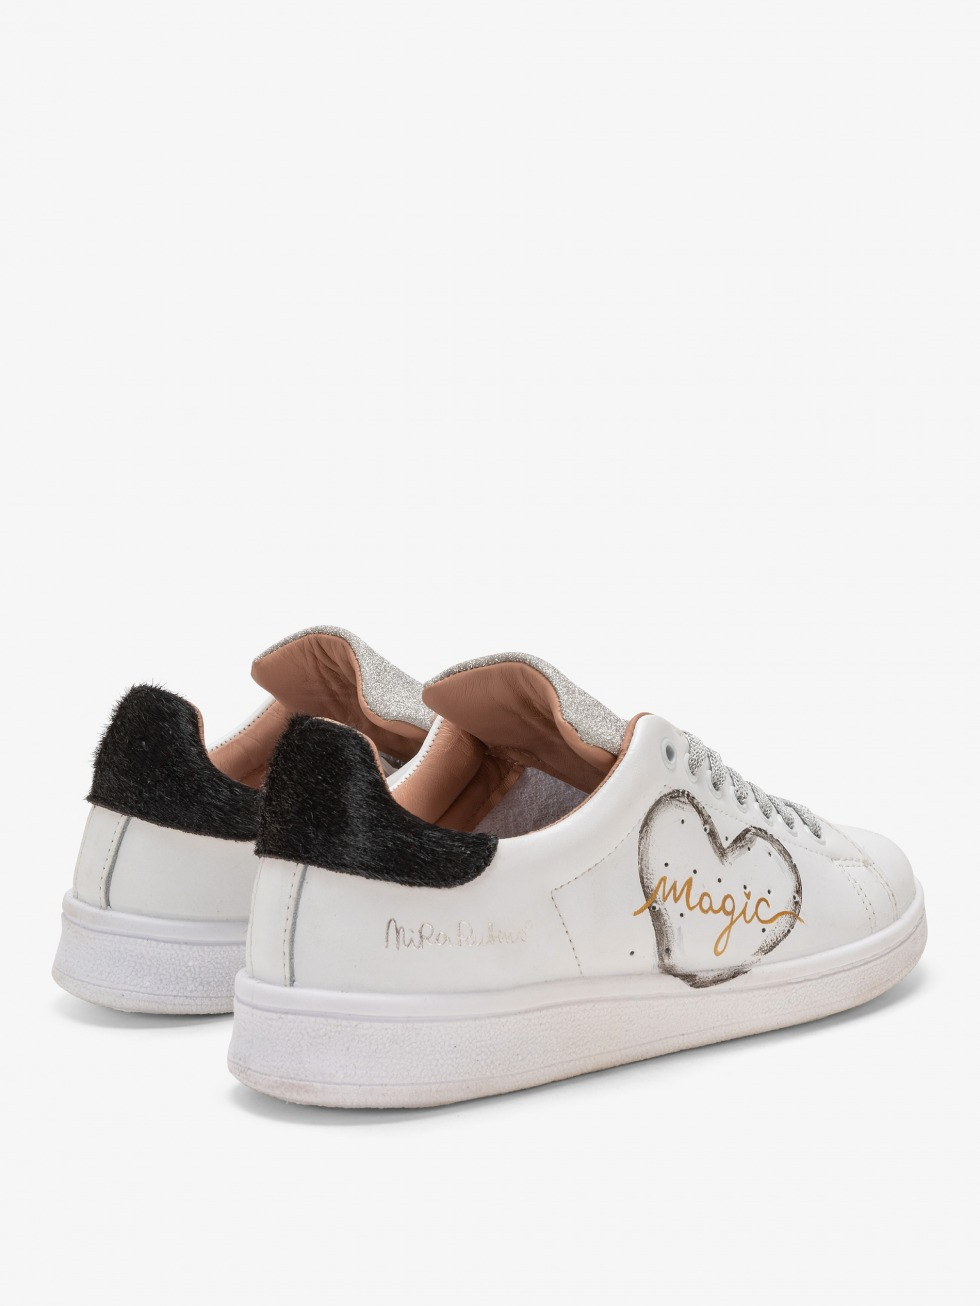 Daiquiri Shine Black Sneakers - Heart